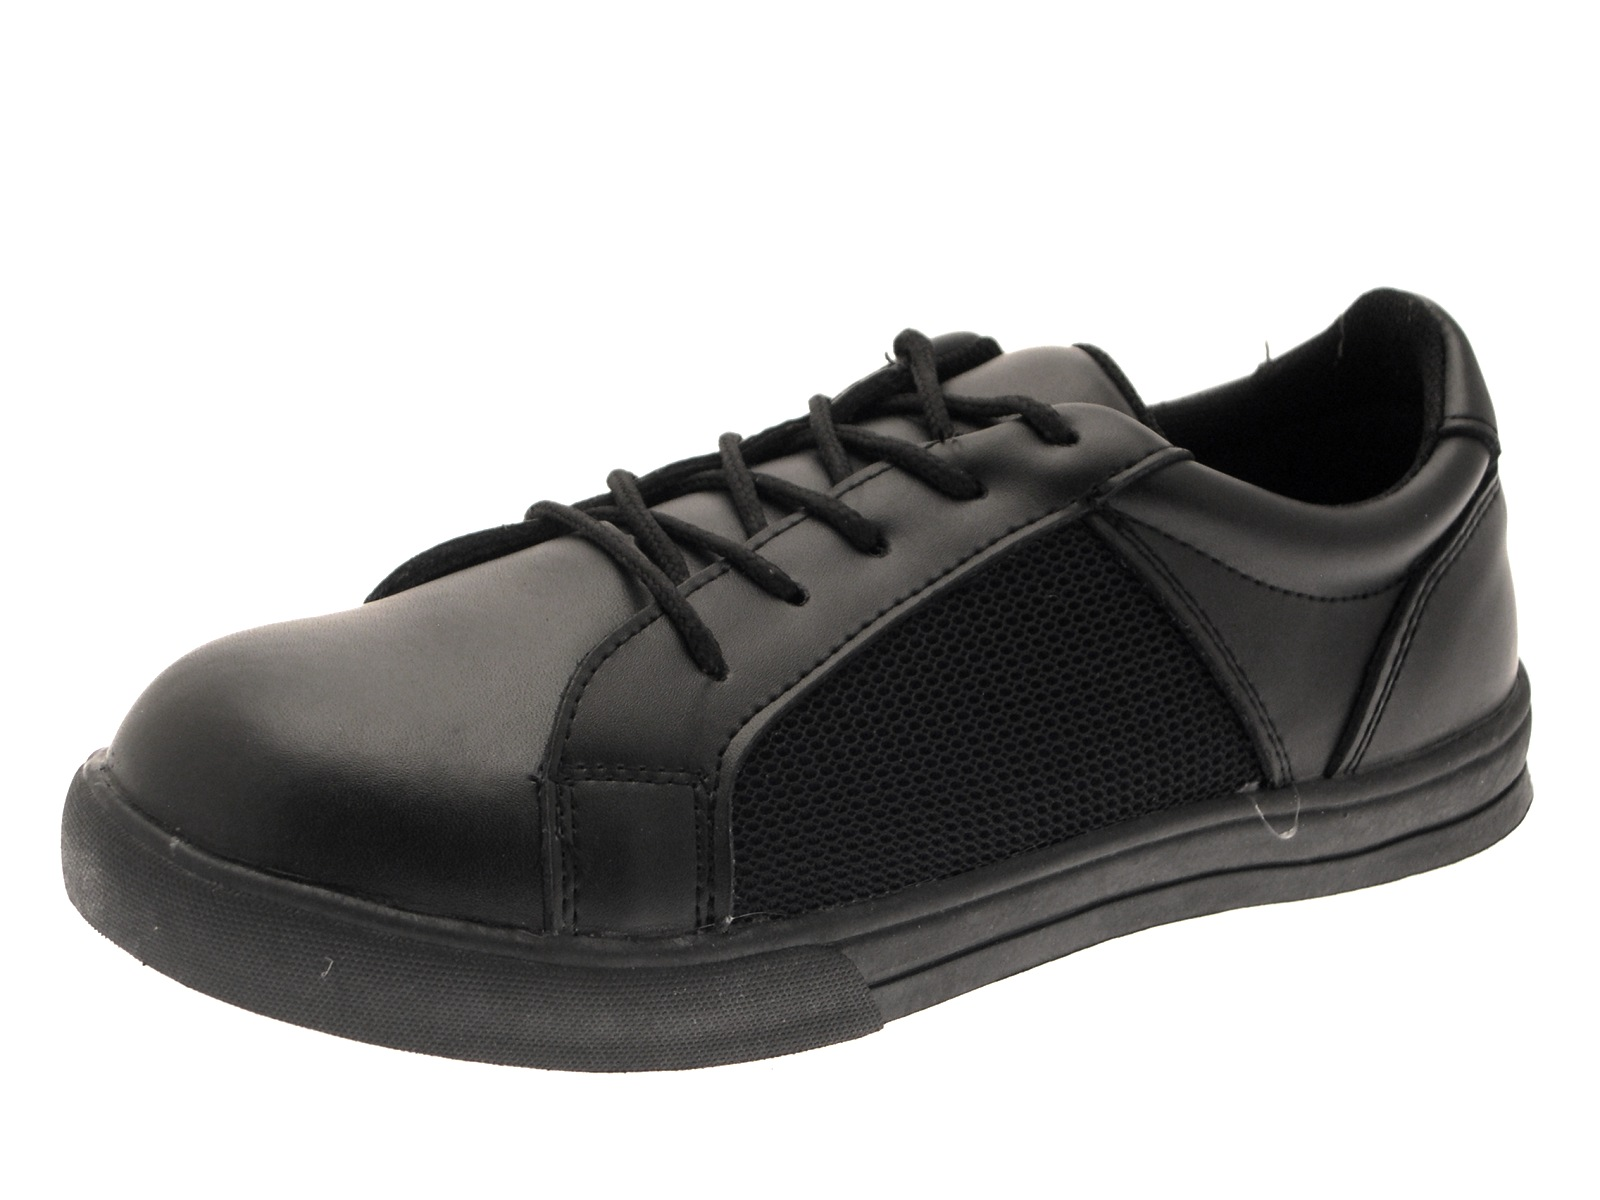 black leather school shoes boys sports trainers lace